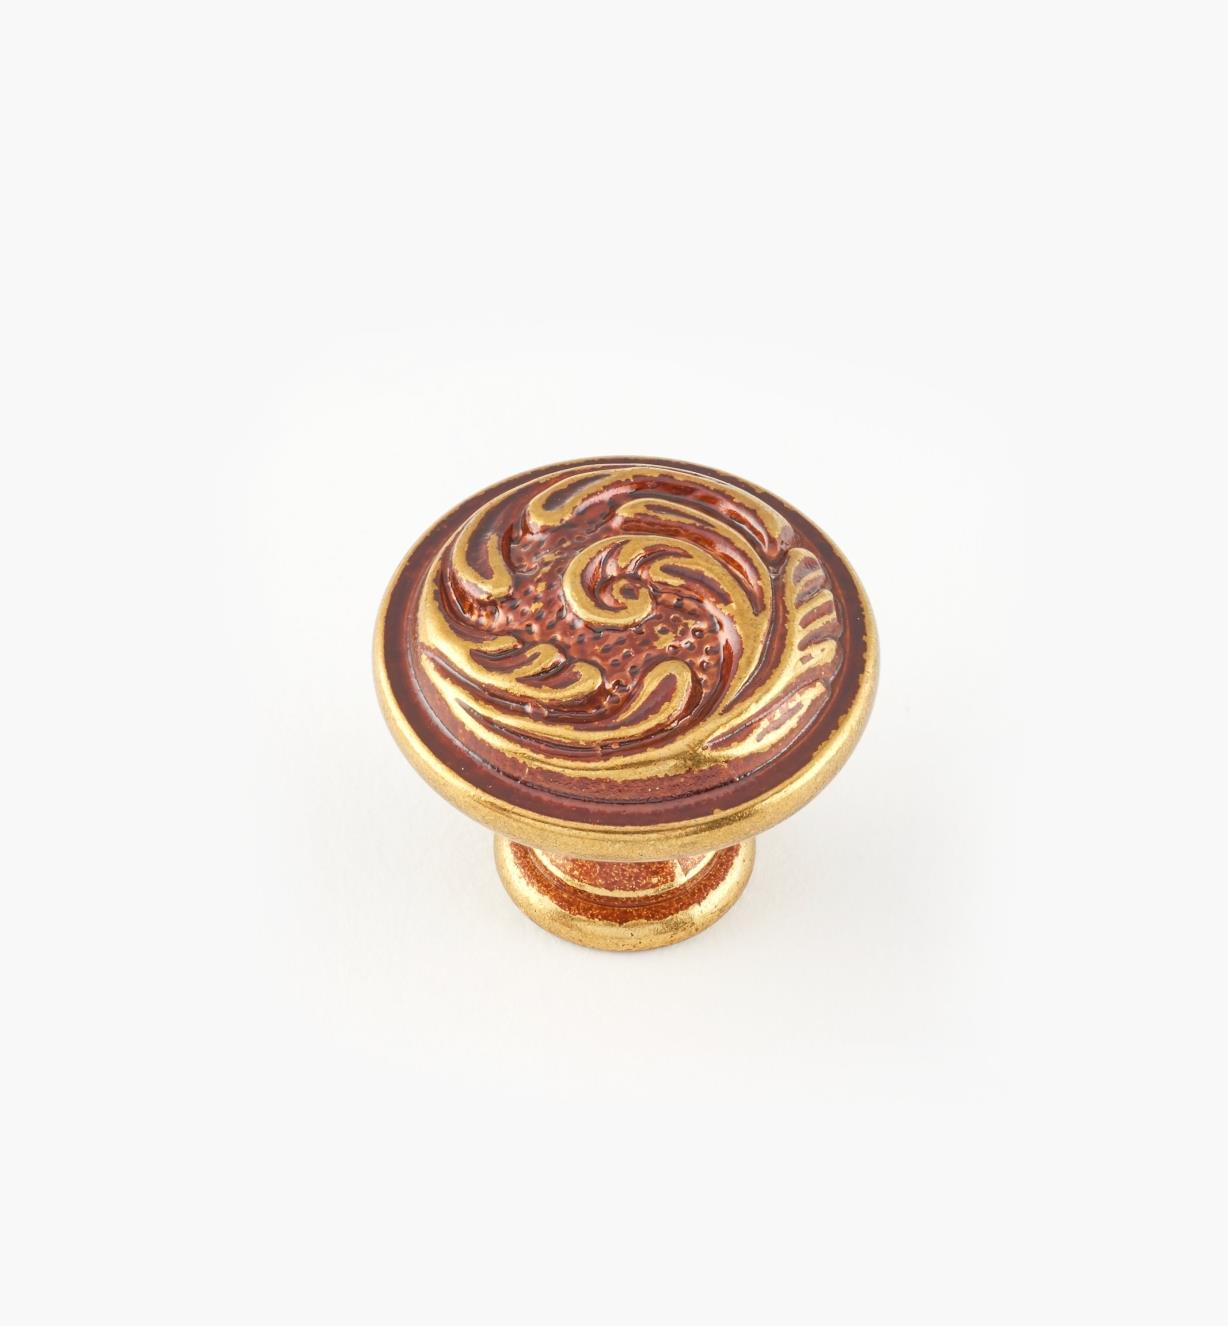 01A5350 - 25mm x 22mm Louis XV Knob